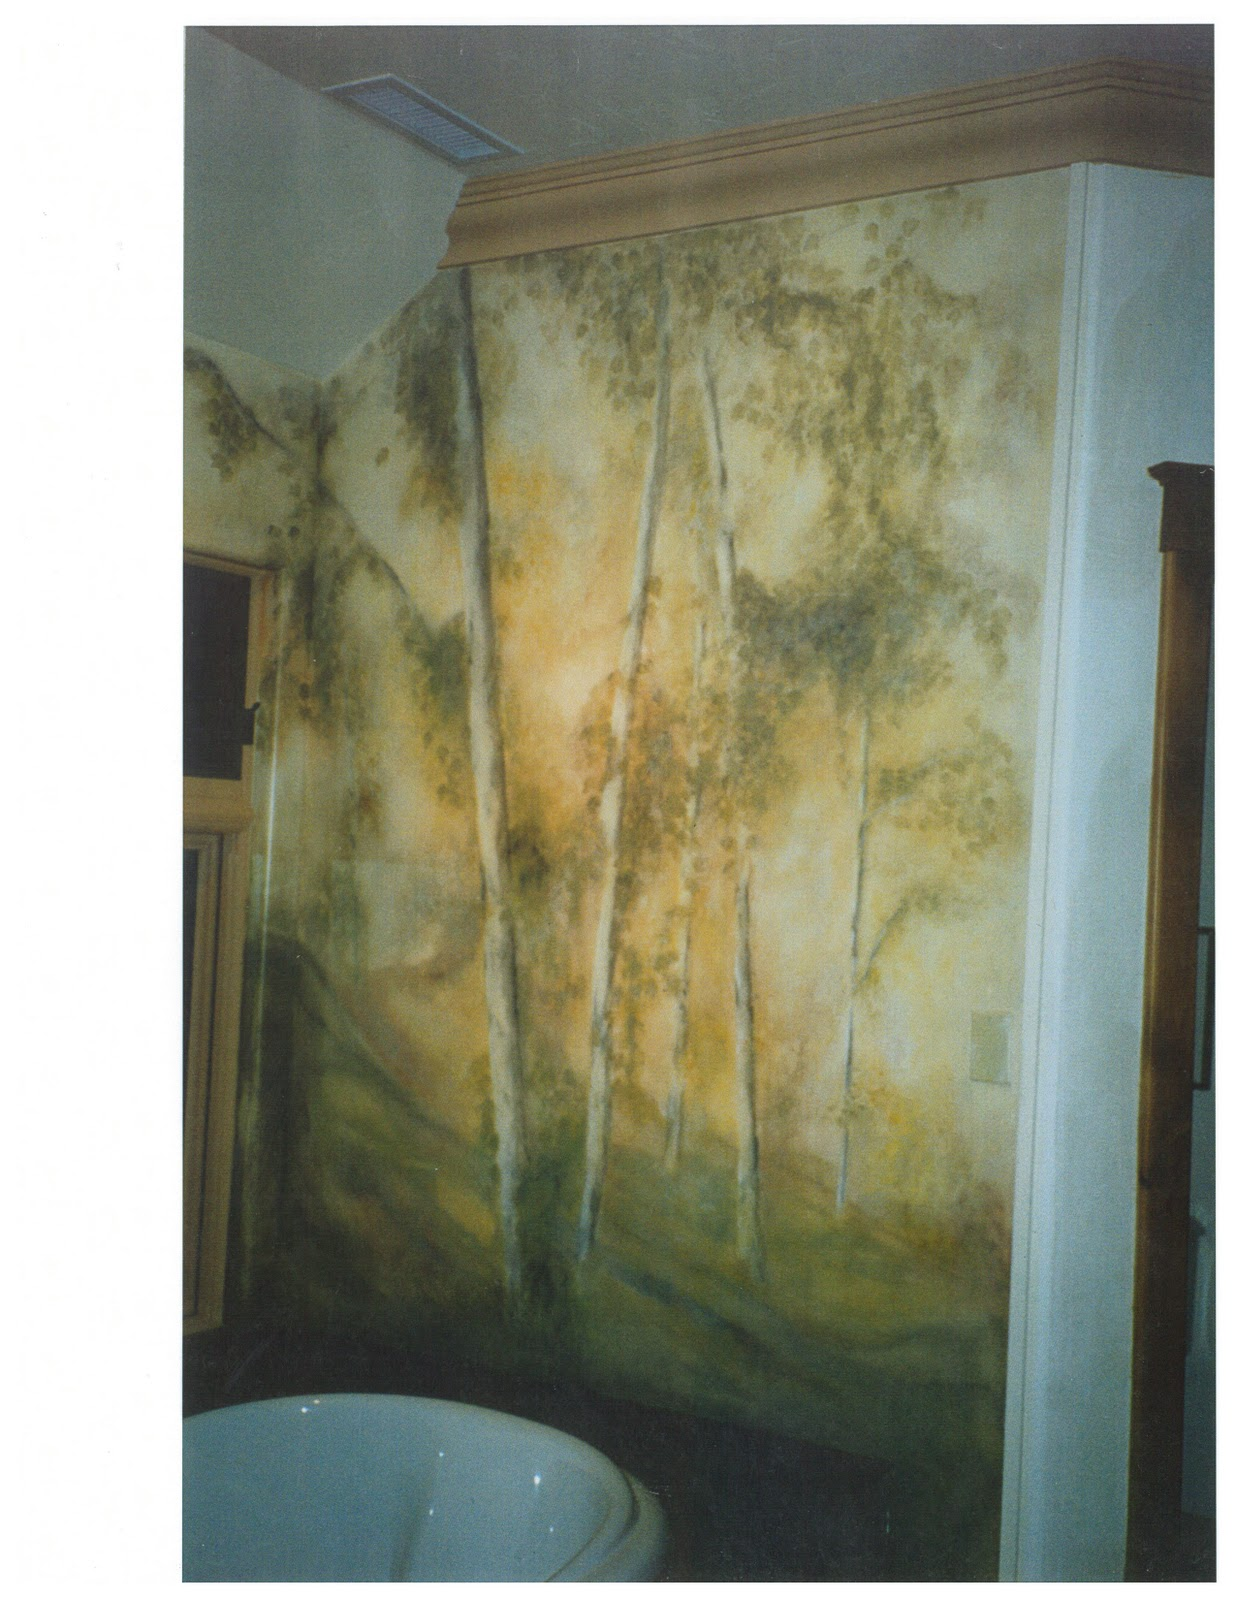 james johansen november 2010 aspen tree mural